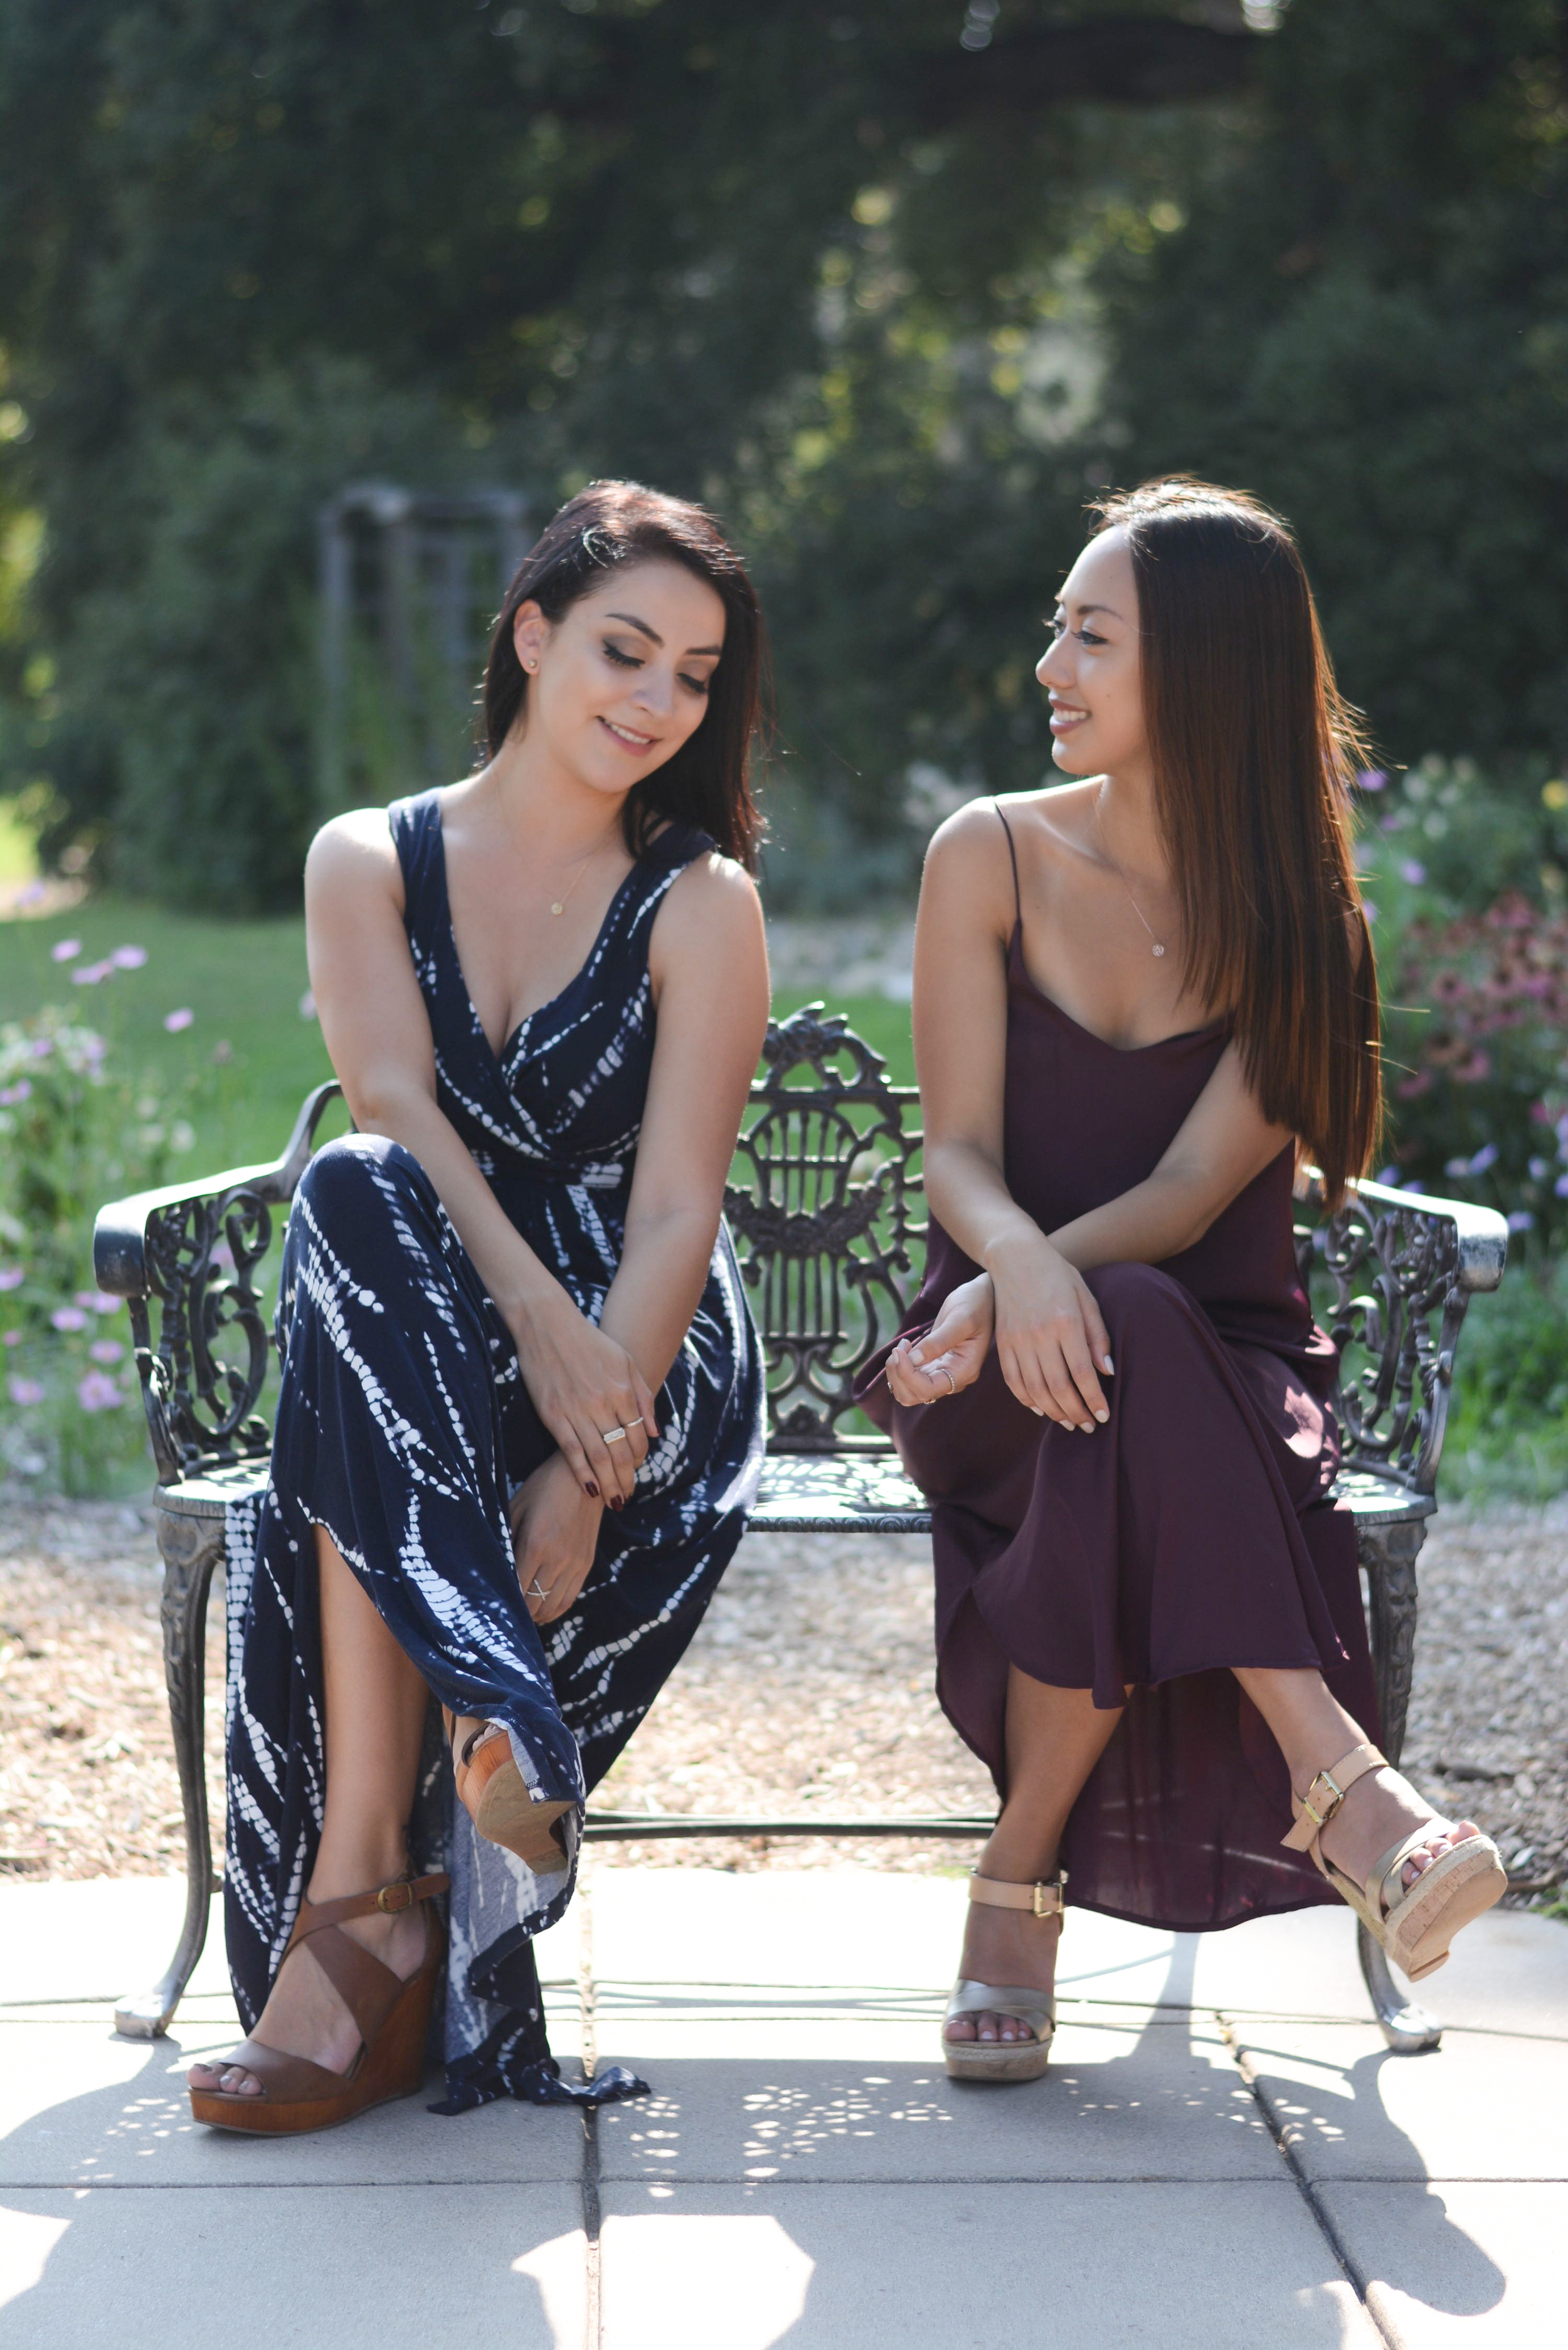 Our dainty jewelry is from  ViLing Designs . They're an LA brand and have the cutest pieces, especially for besties   👭   (like the  morse code bracelets !)